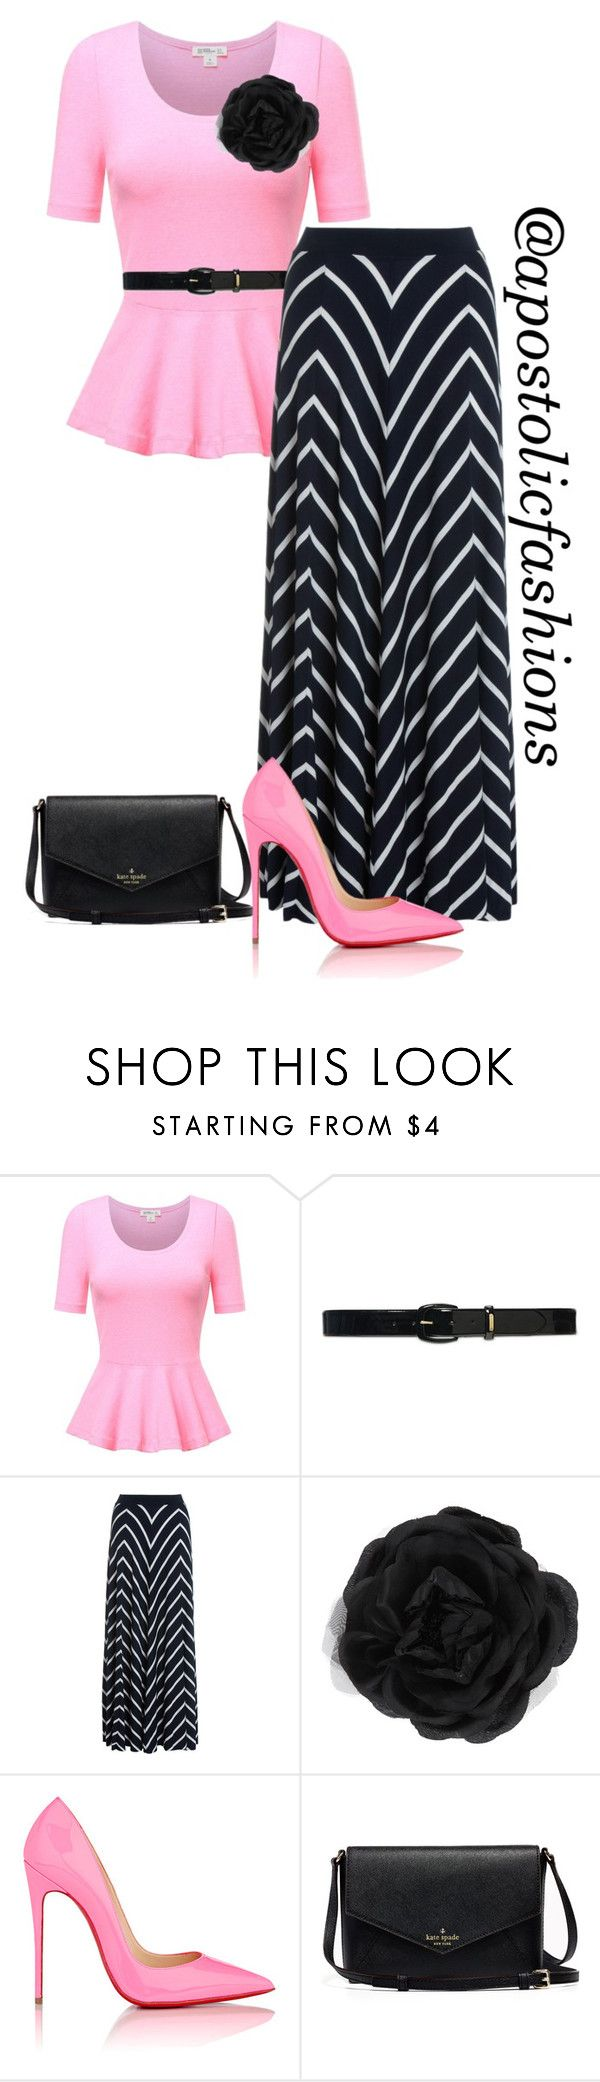 Apostolic Fashions #1242 by apostolicfashions on Polyvore featuring Monsoon, Christian Louboutin, Accessorize and Lauren Ralph Lauren